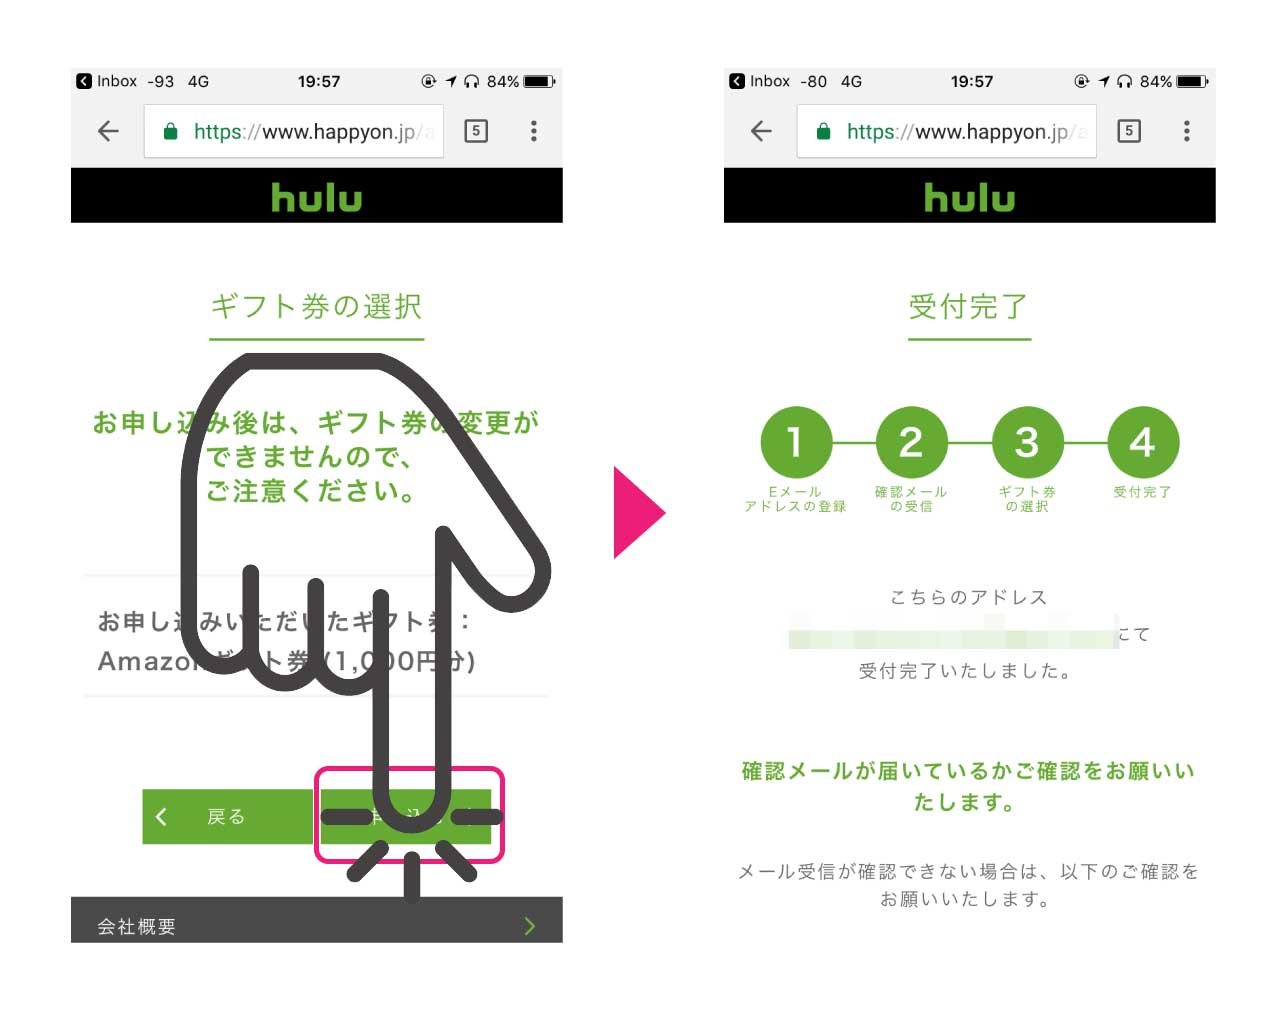 hulu-system-trouble-ticket-request-finish-6